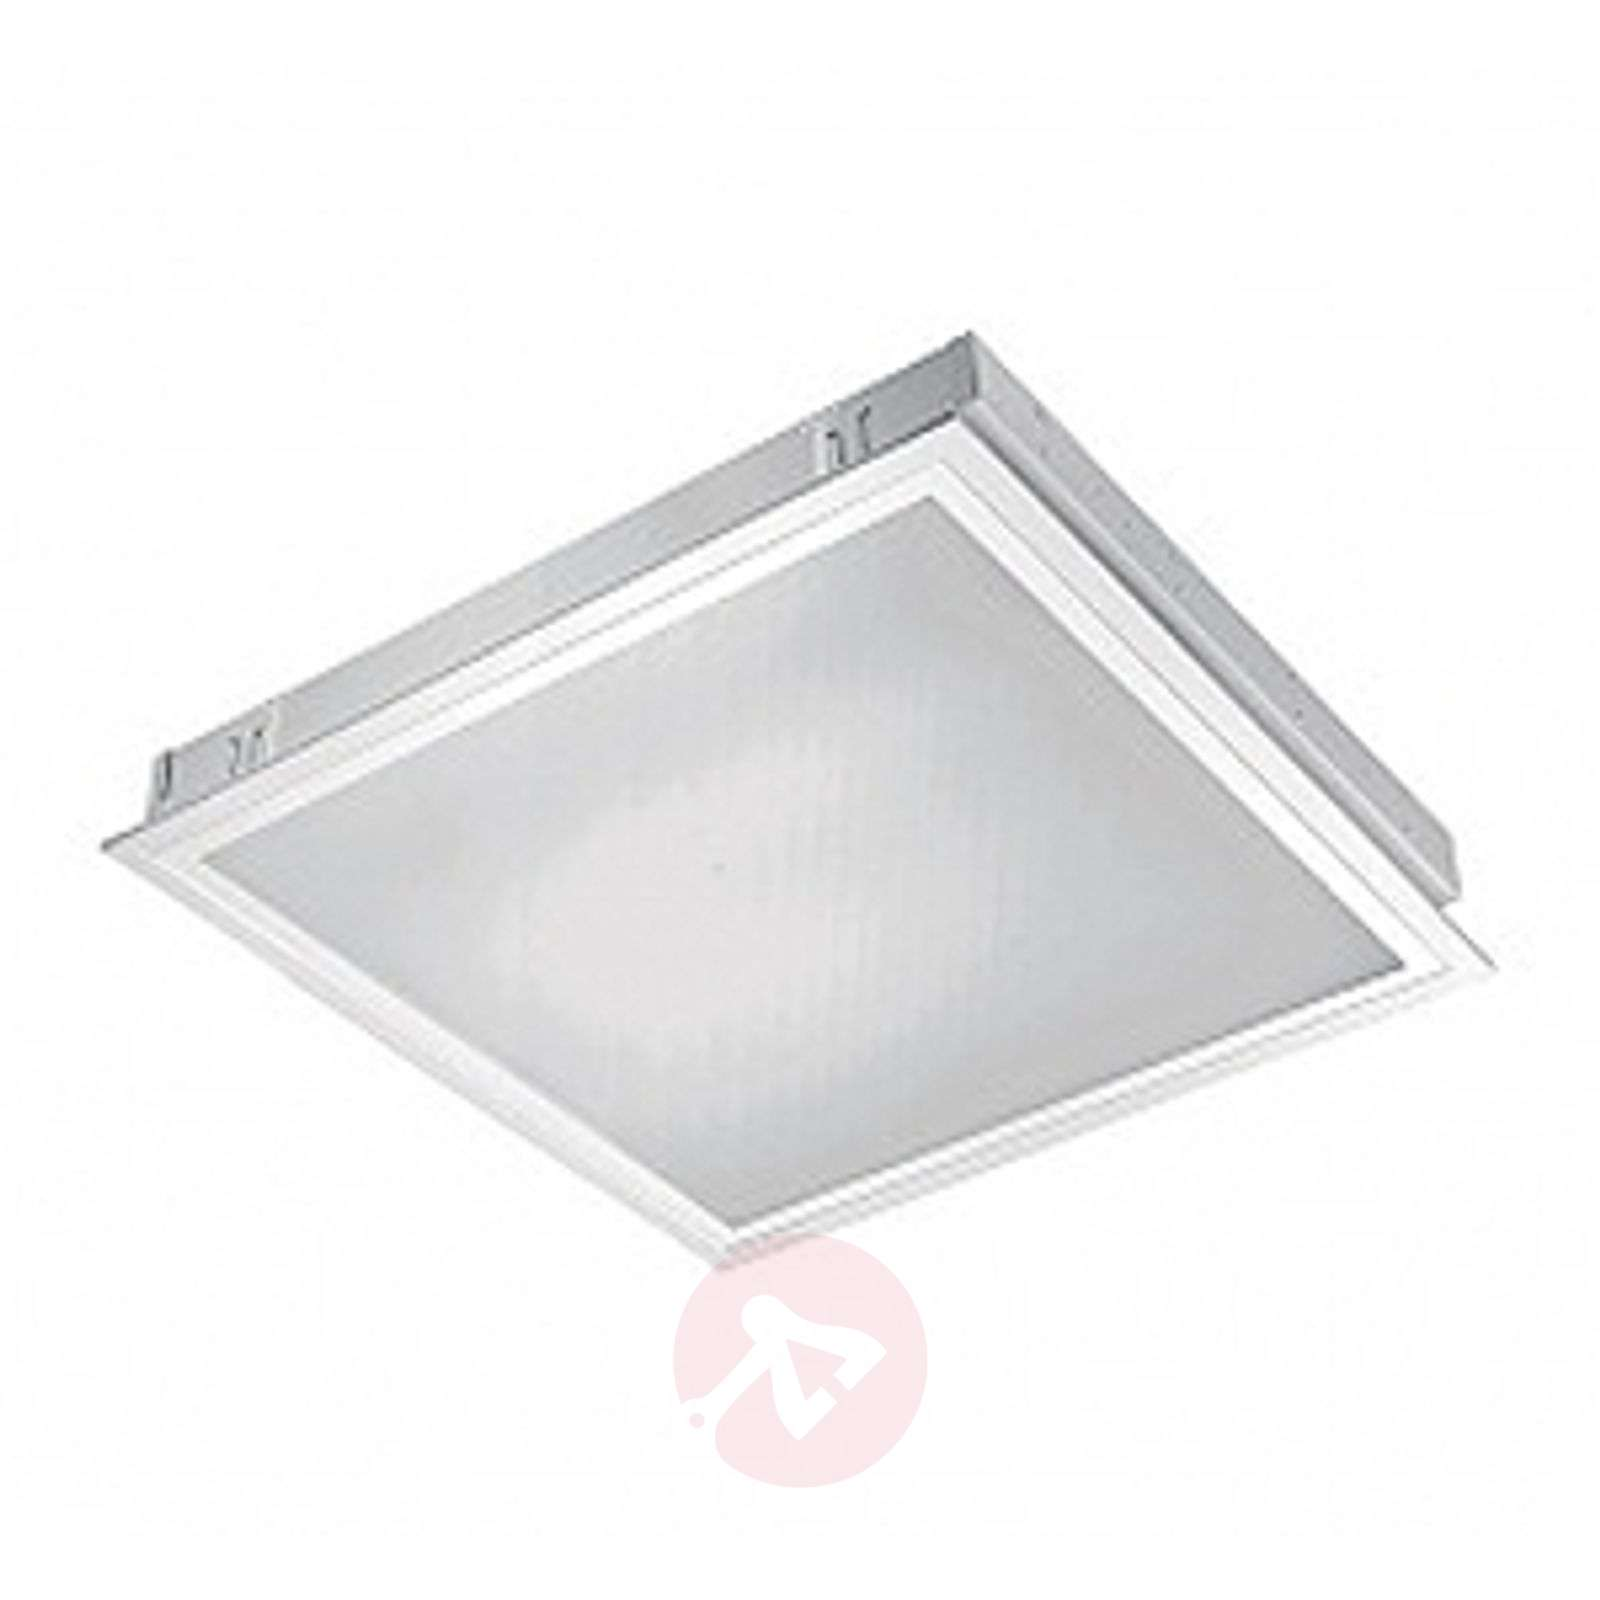 Recessed light 3010, 4x24W with opal cover-1009054-01